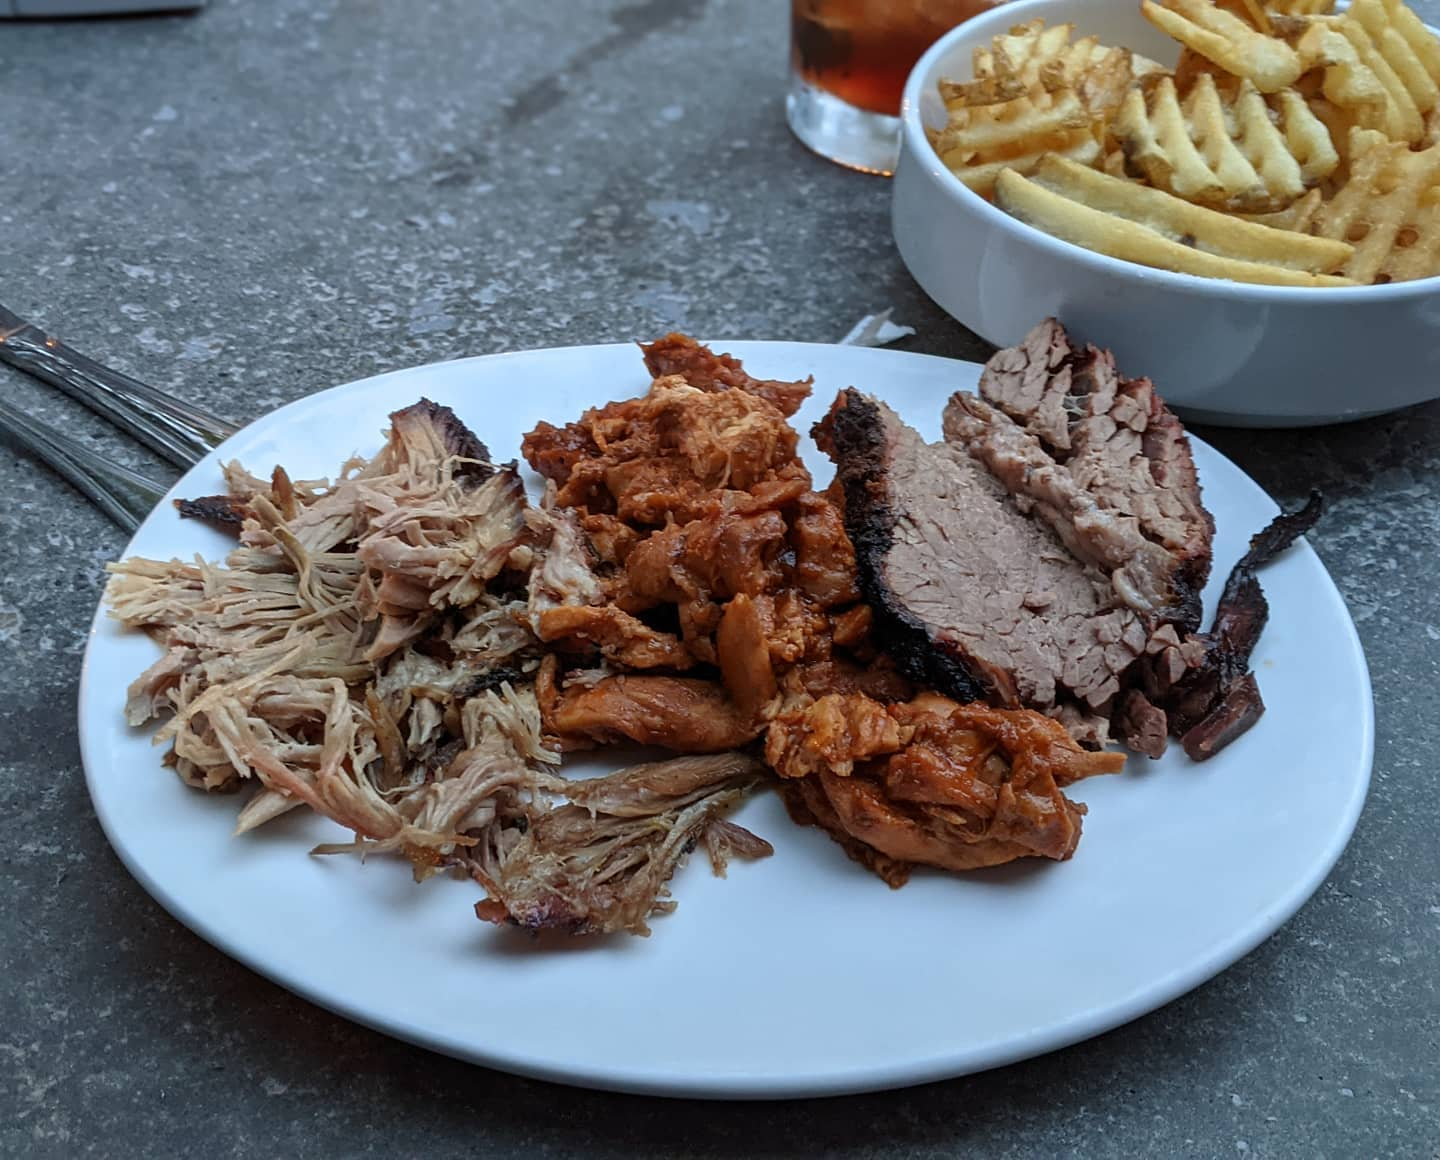 And while I might not be watching the Rolling Stones in concert tonight, I *am* enjoying some seriously good barbecue #slowsbbq #detroit #foodporn